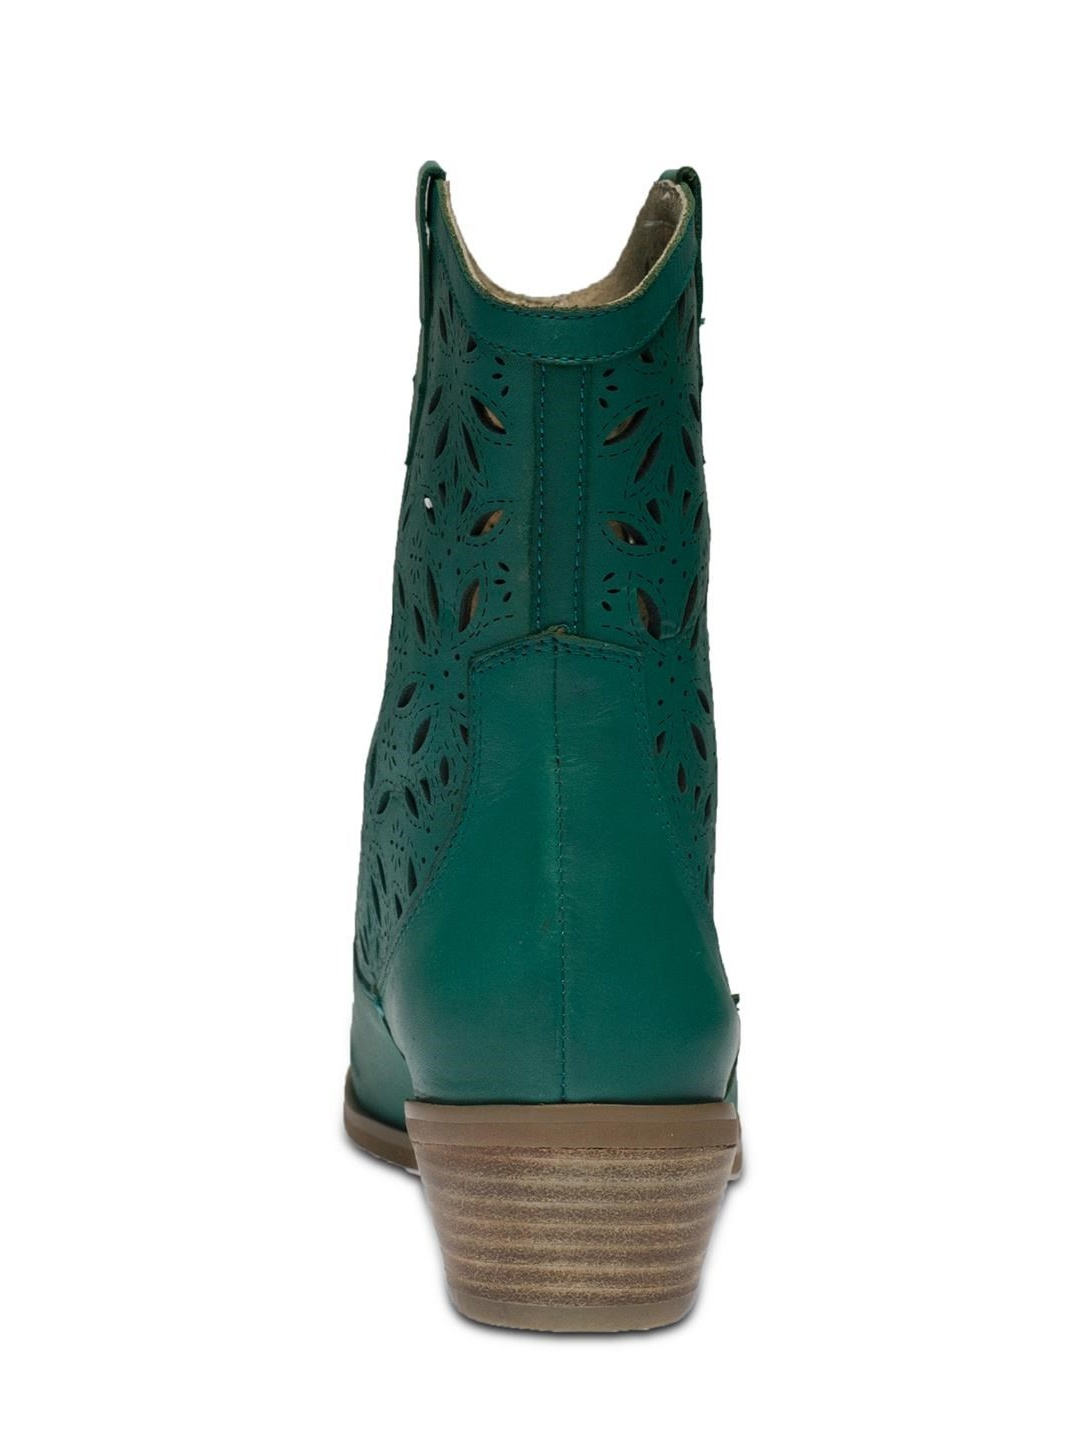 L'Artiste Elgin By Spring Step Turquoise Leather Boots 37 EU / 7 US Women